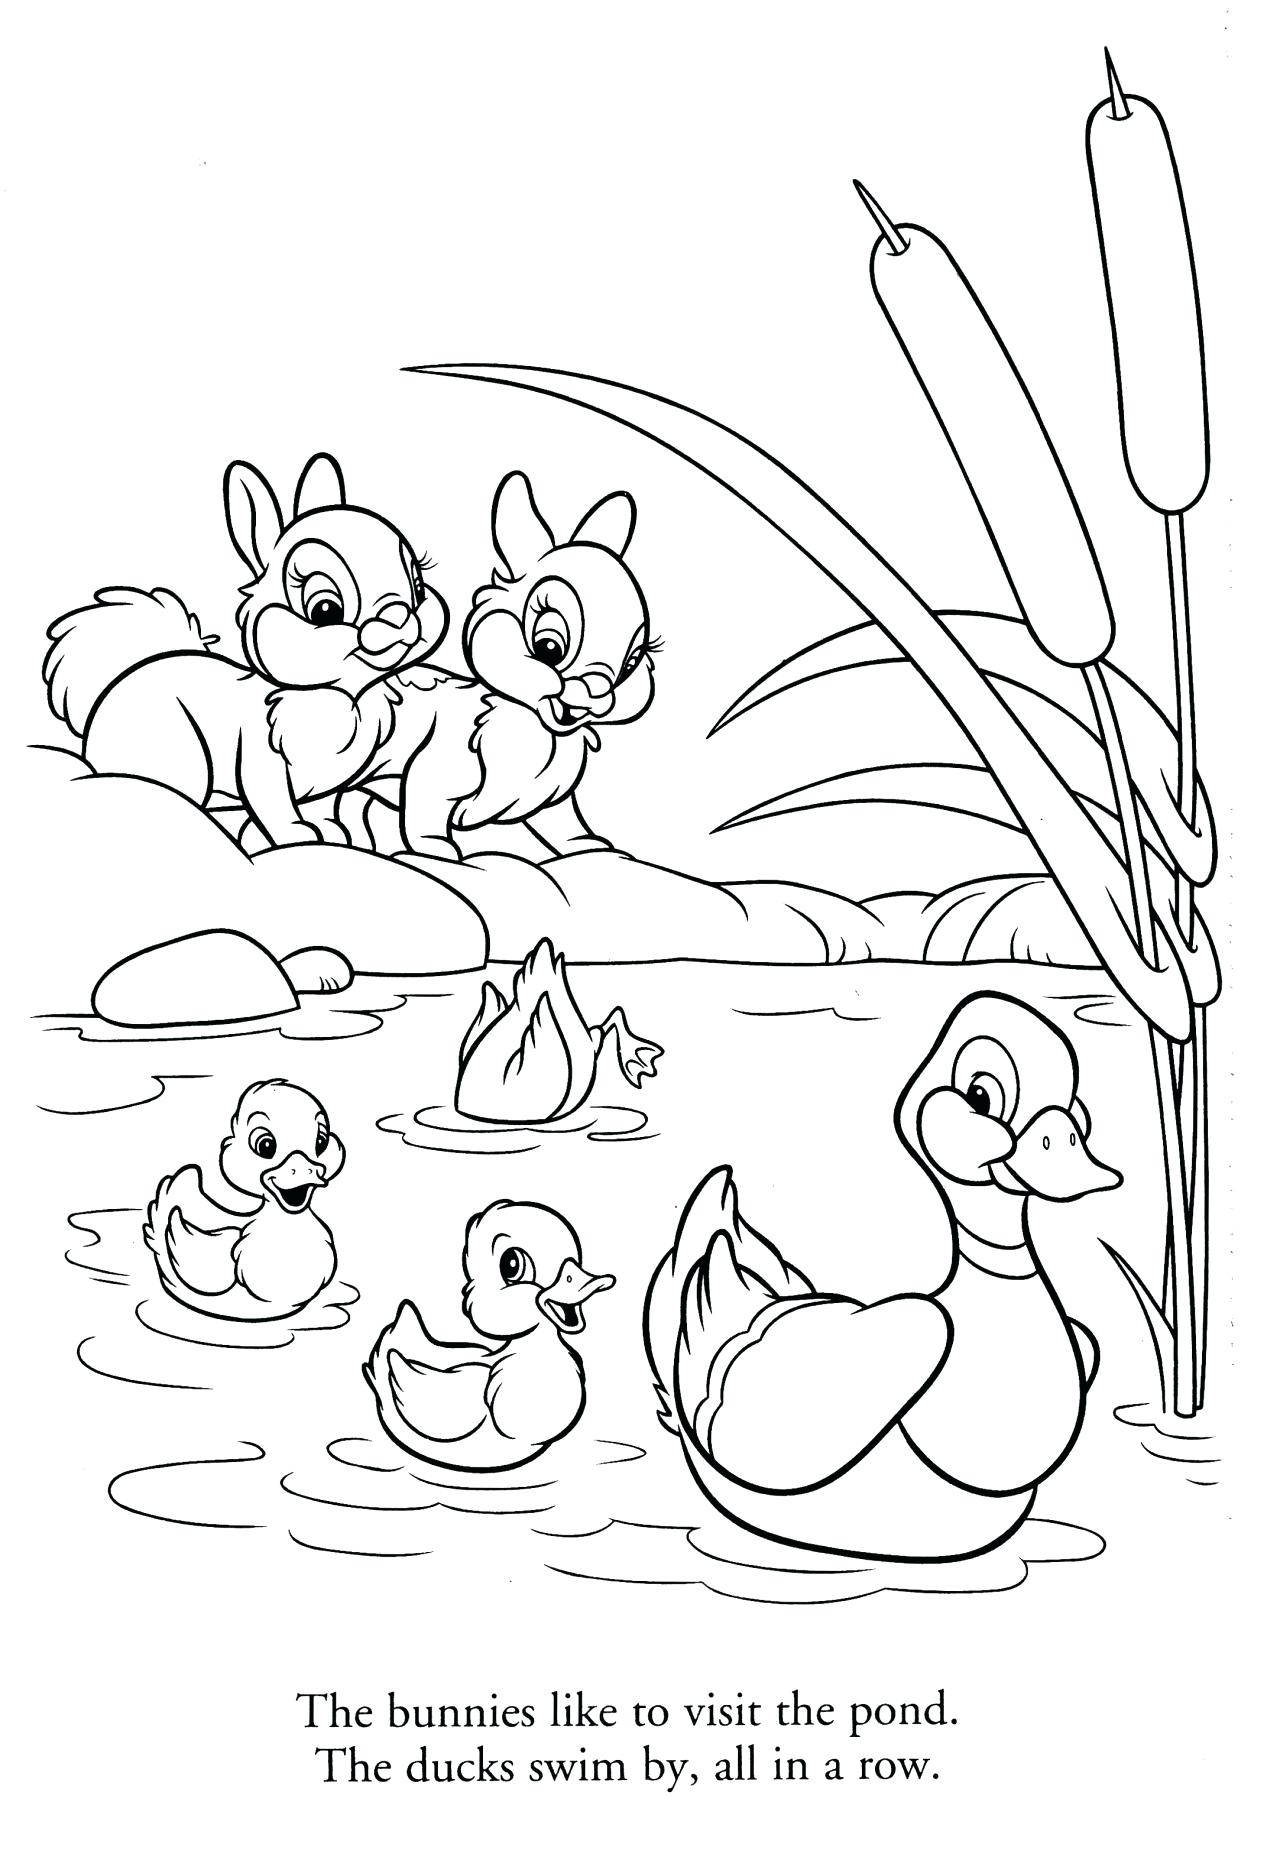 Duck In A Pond Drawing at GetDrawings.com | Free for personal use ...